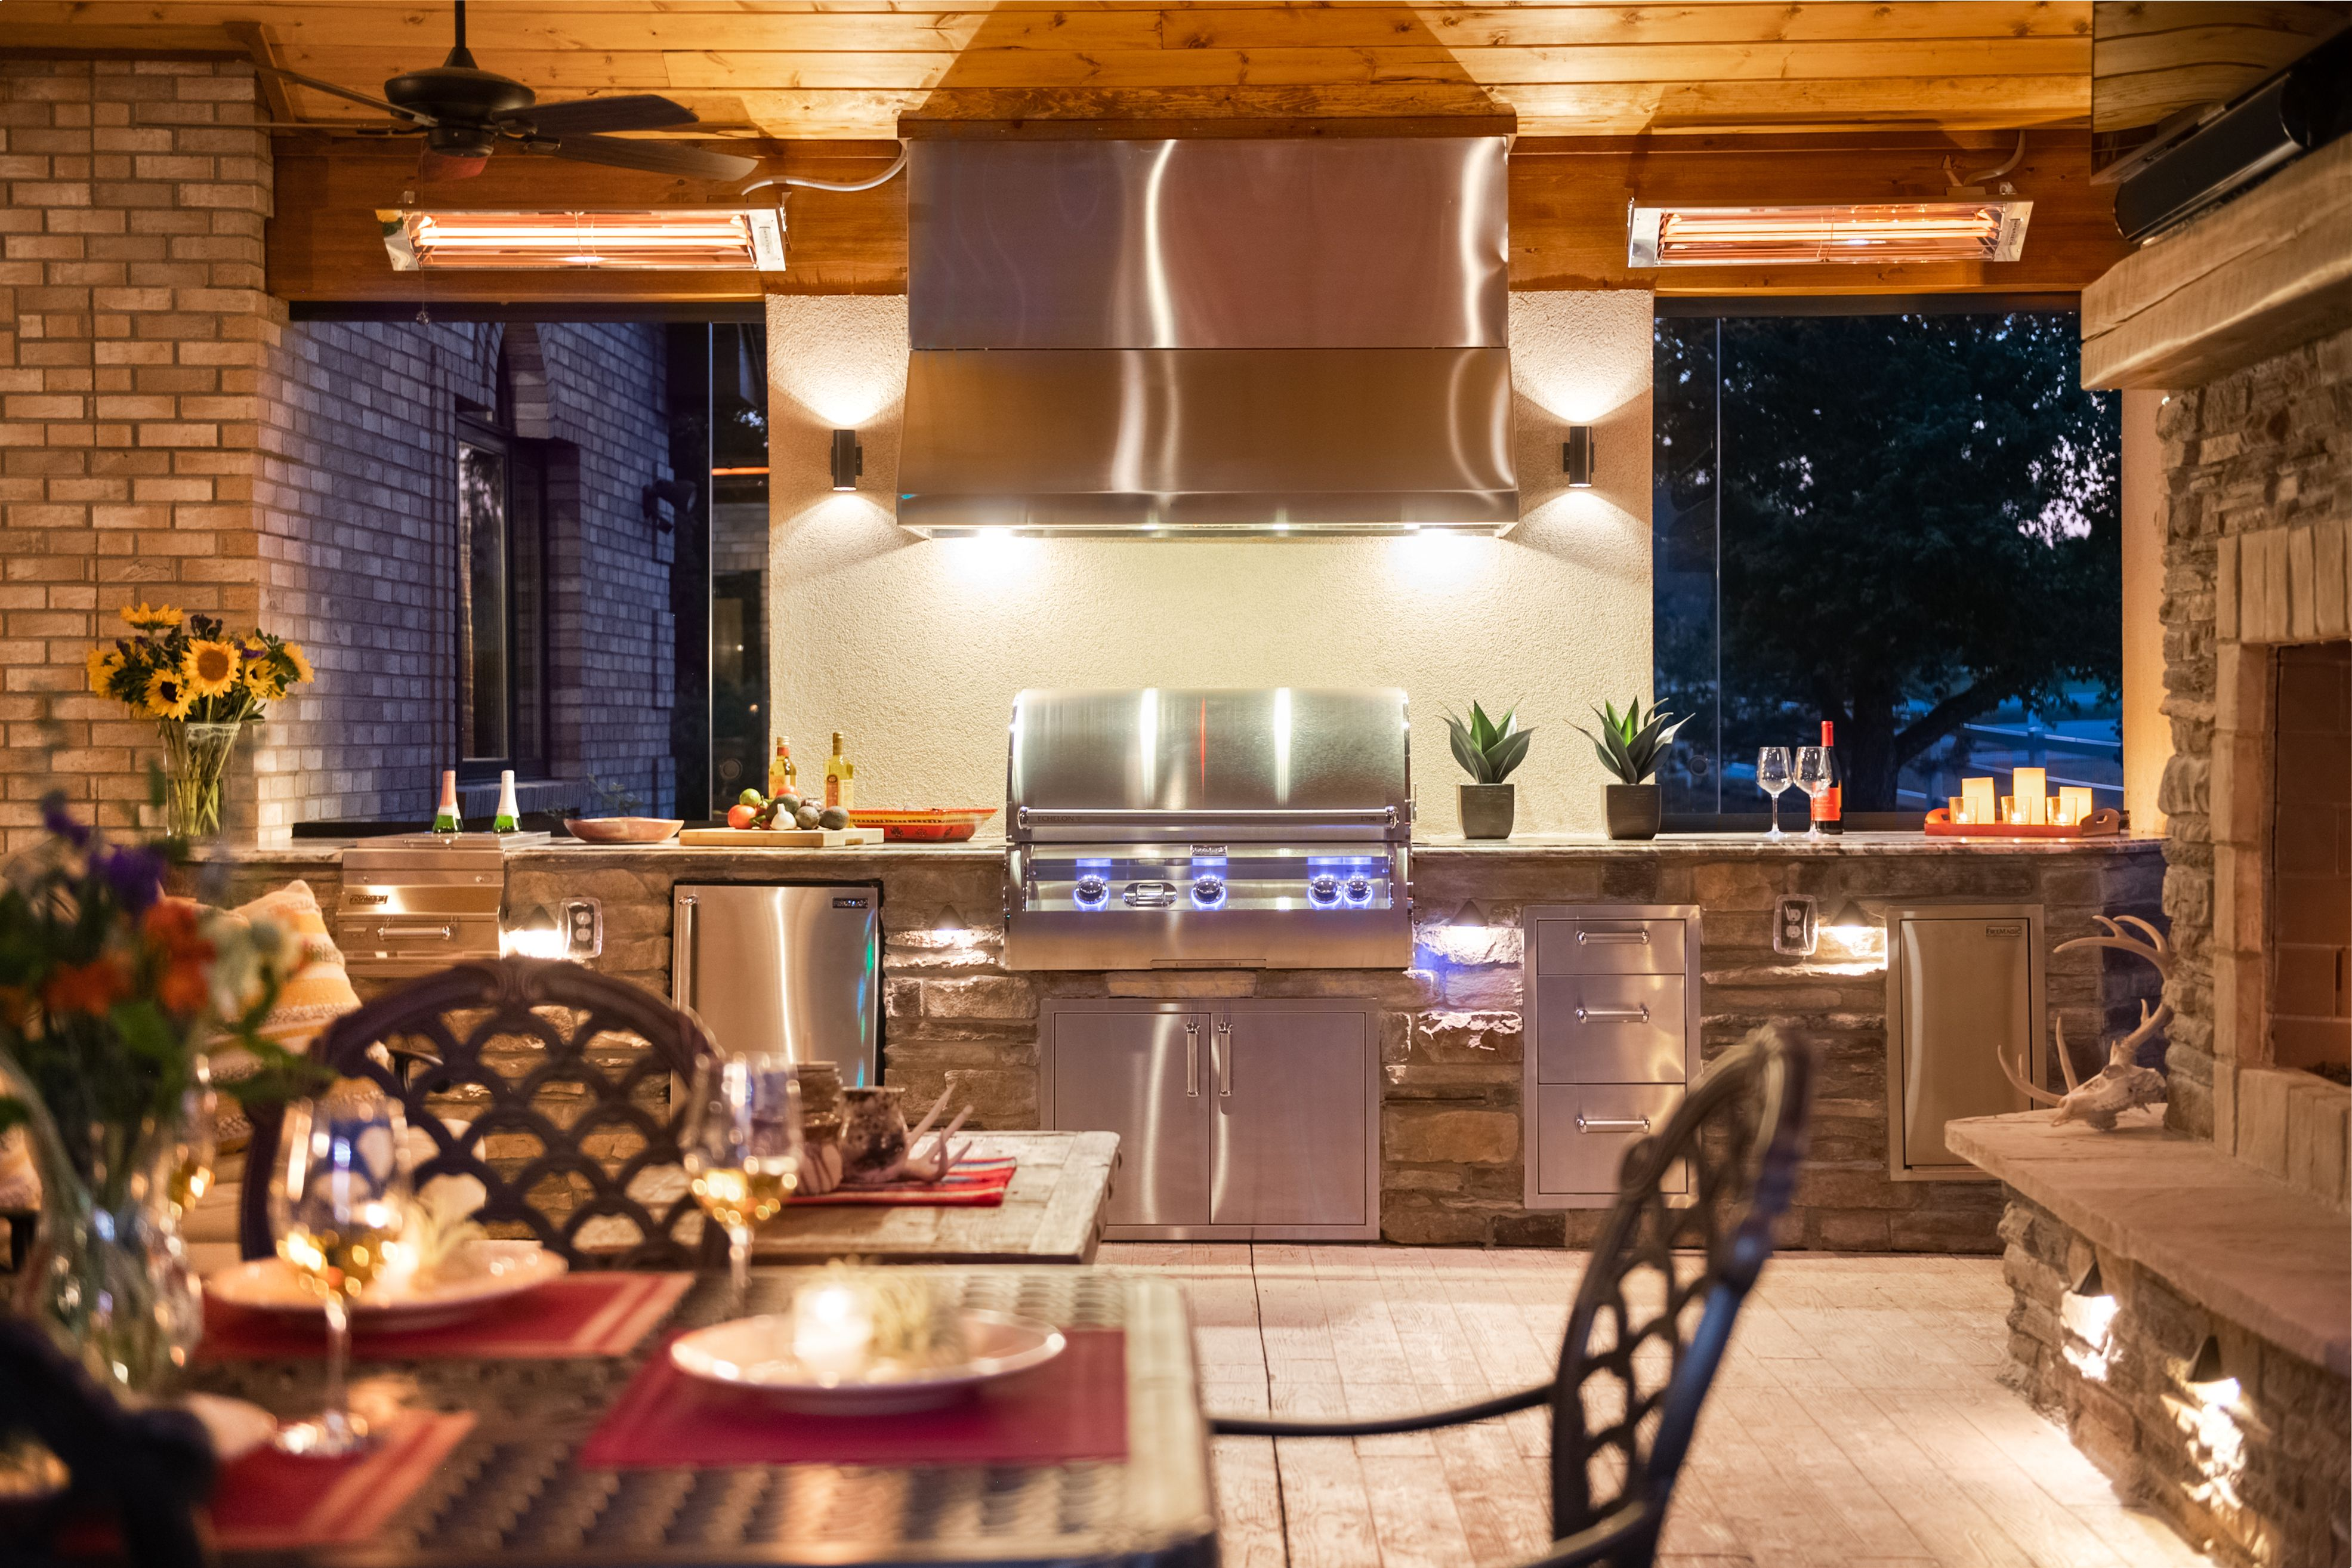 Outdoor Kitchen On Covered Patio Outdoor Kitchen Acme Brick Stone Houses